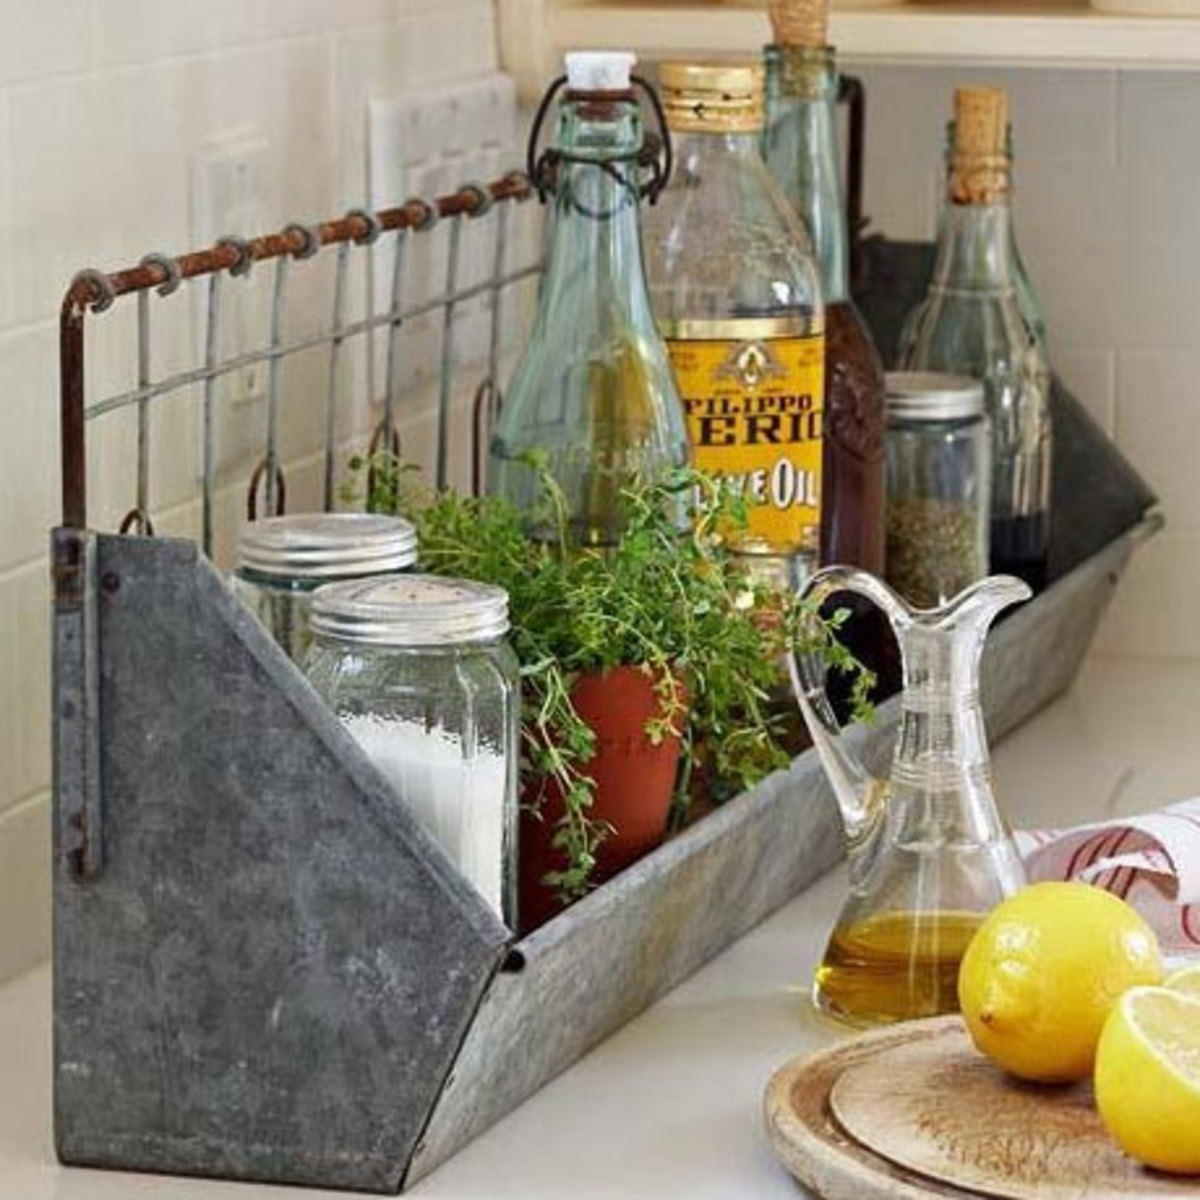 Chicken Feeder Storage for Oil and Vinegar | Easy Organization Ideas for the Home